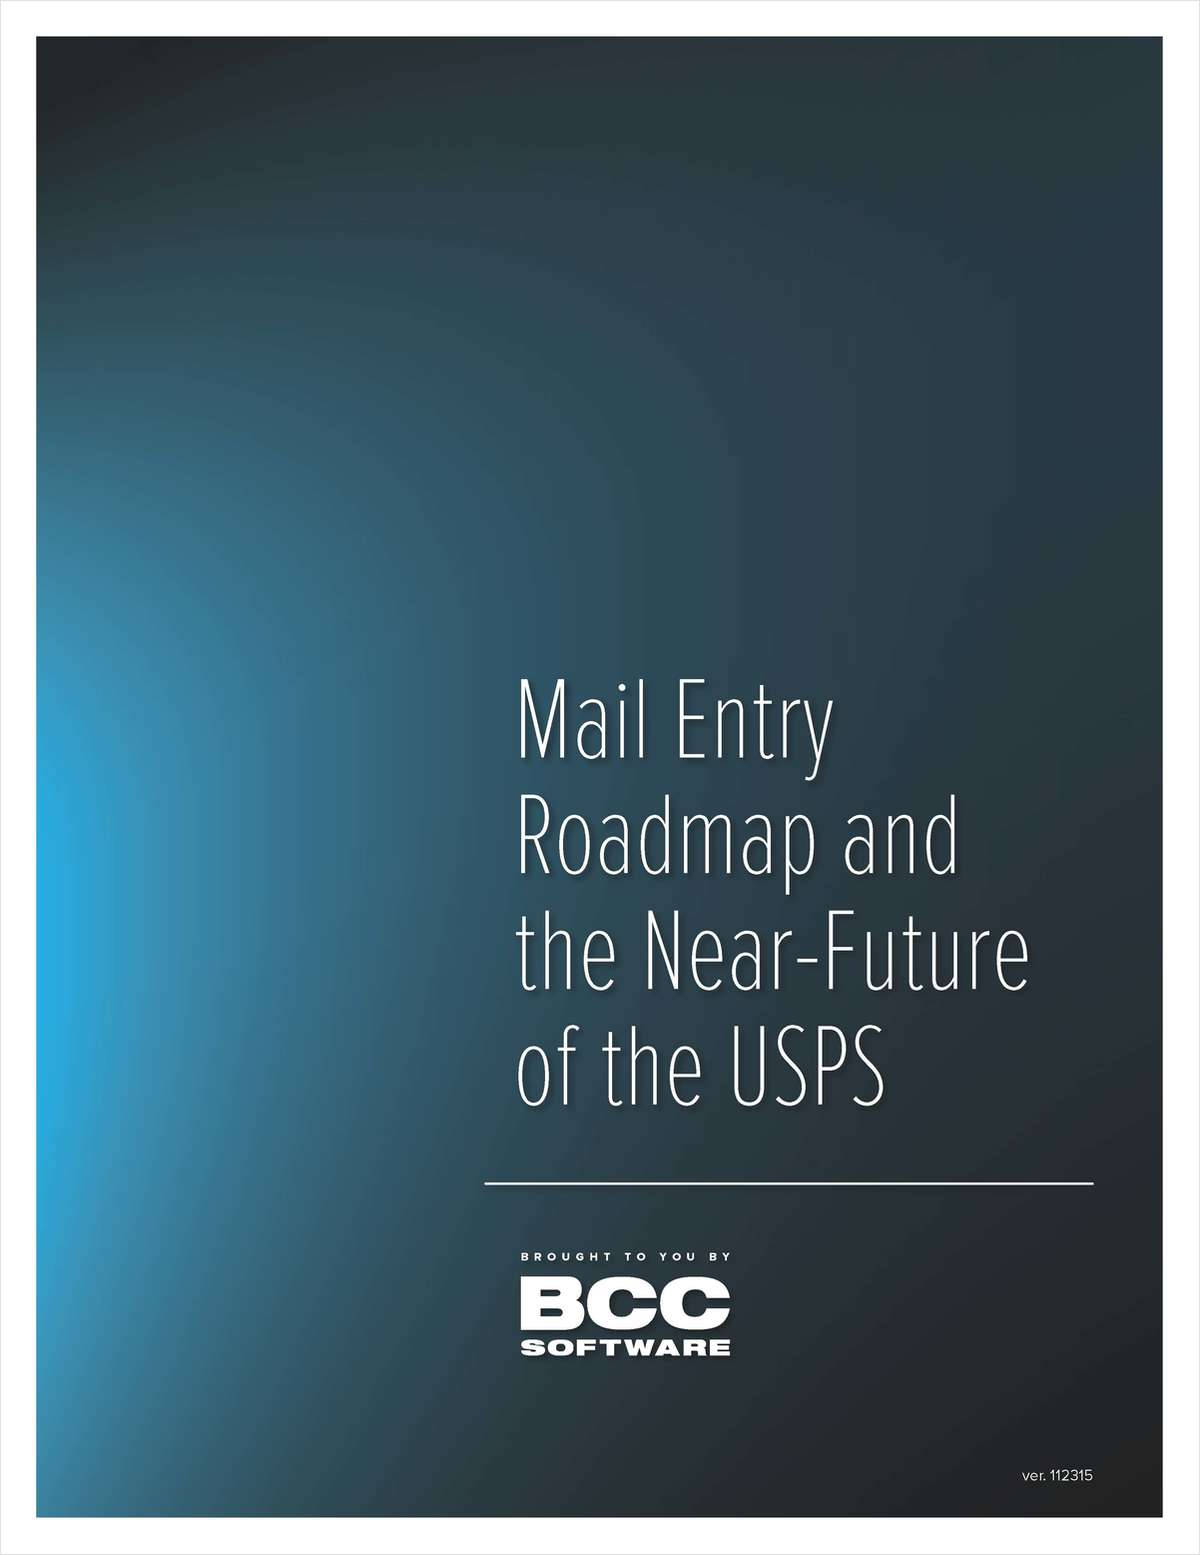 Mail Entry Roadmap and the Near-Future of the USPS